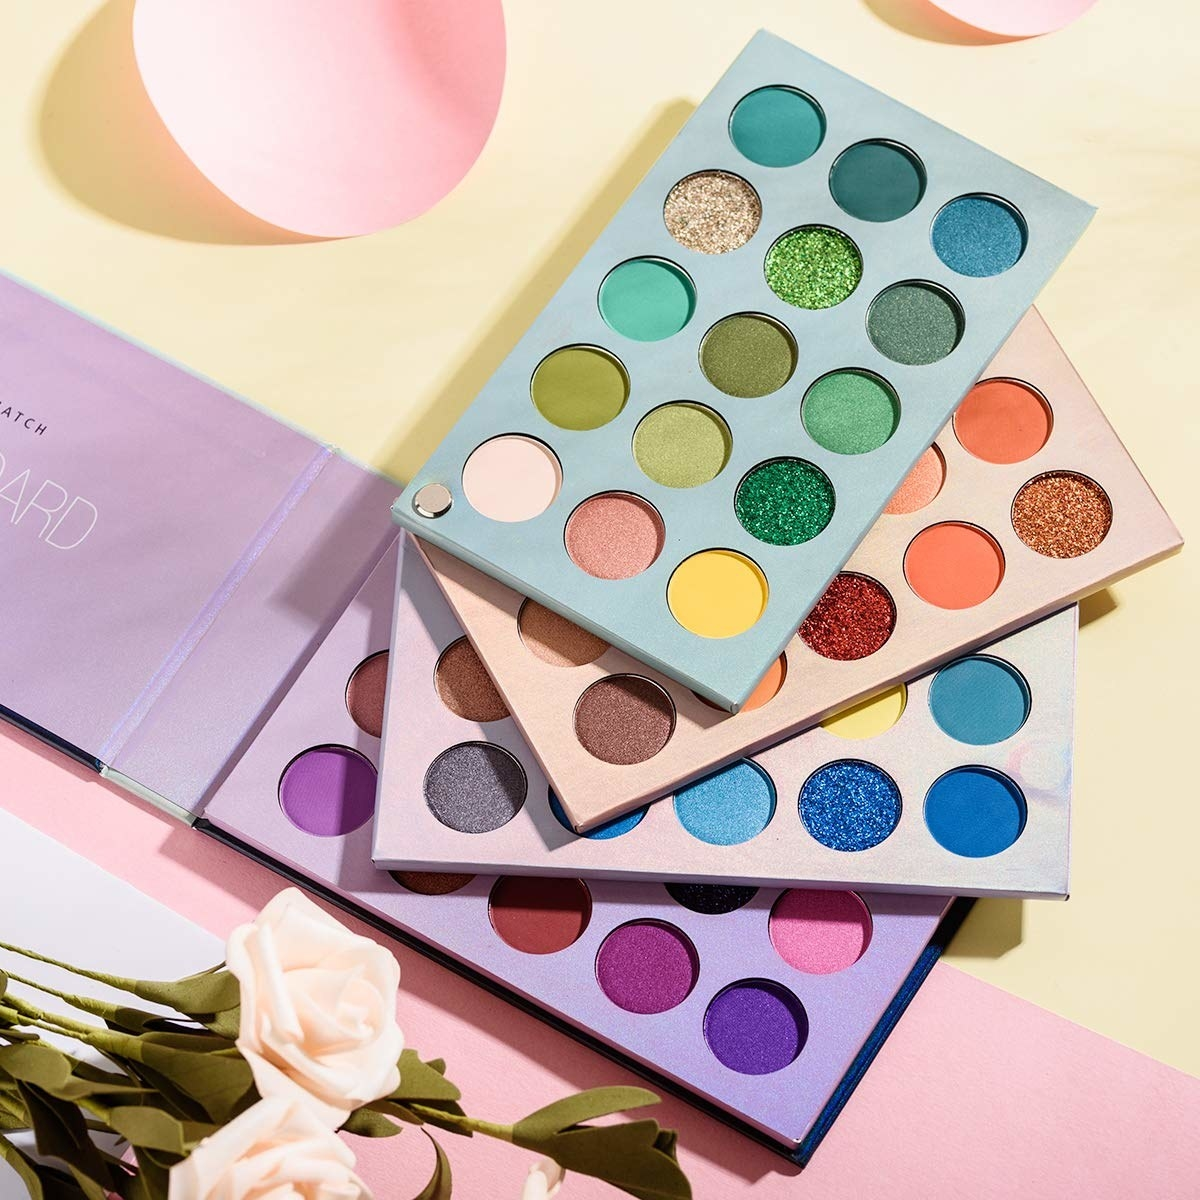 the eyeshadow palette with four layers in a rotary design